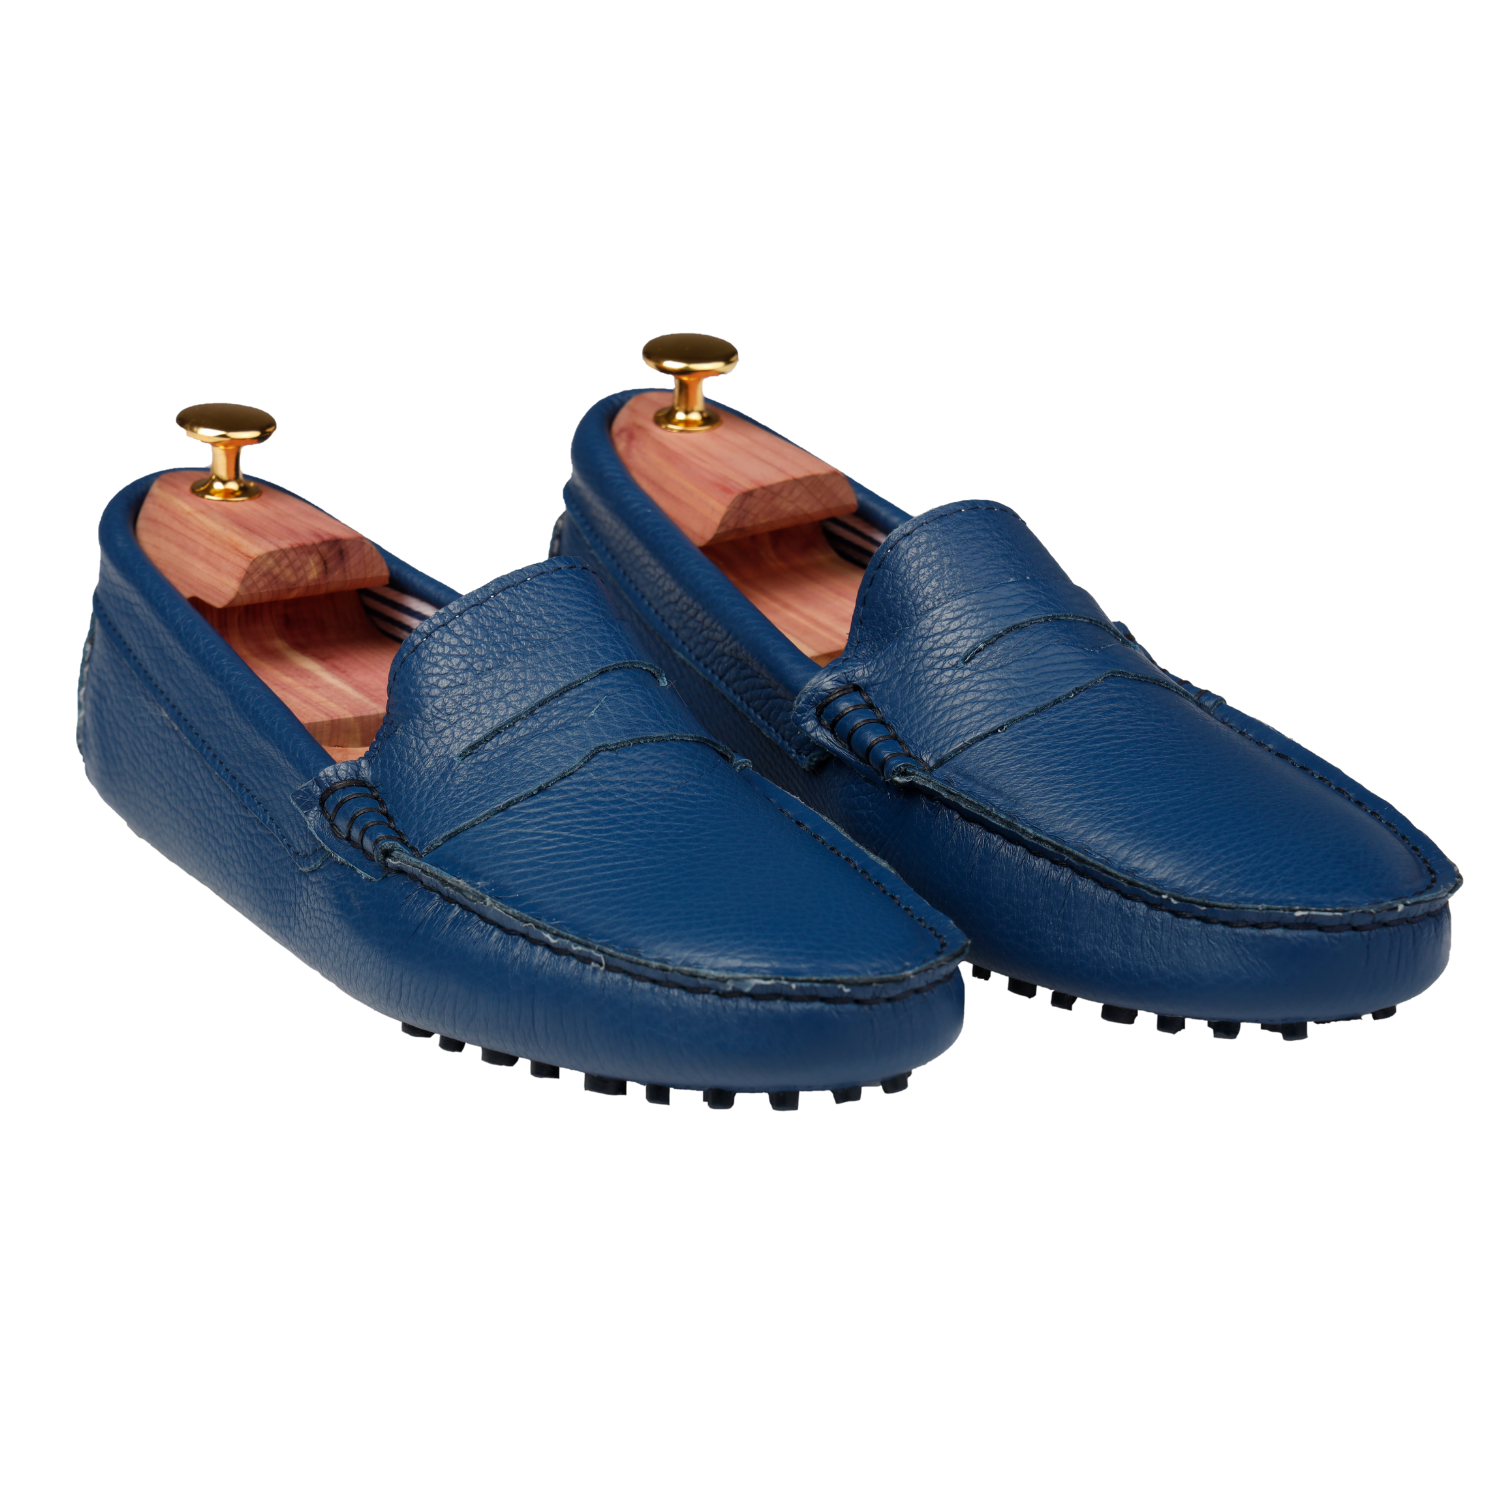 Mocassini Uomo Gommini Pelle Blu Persian